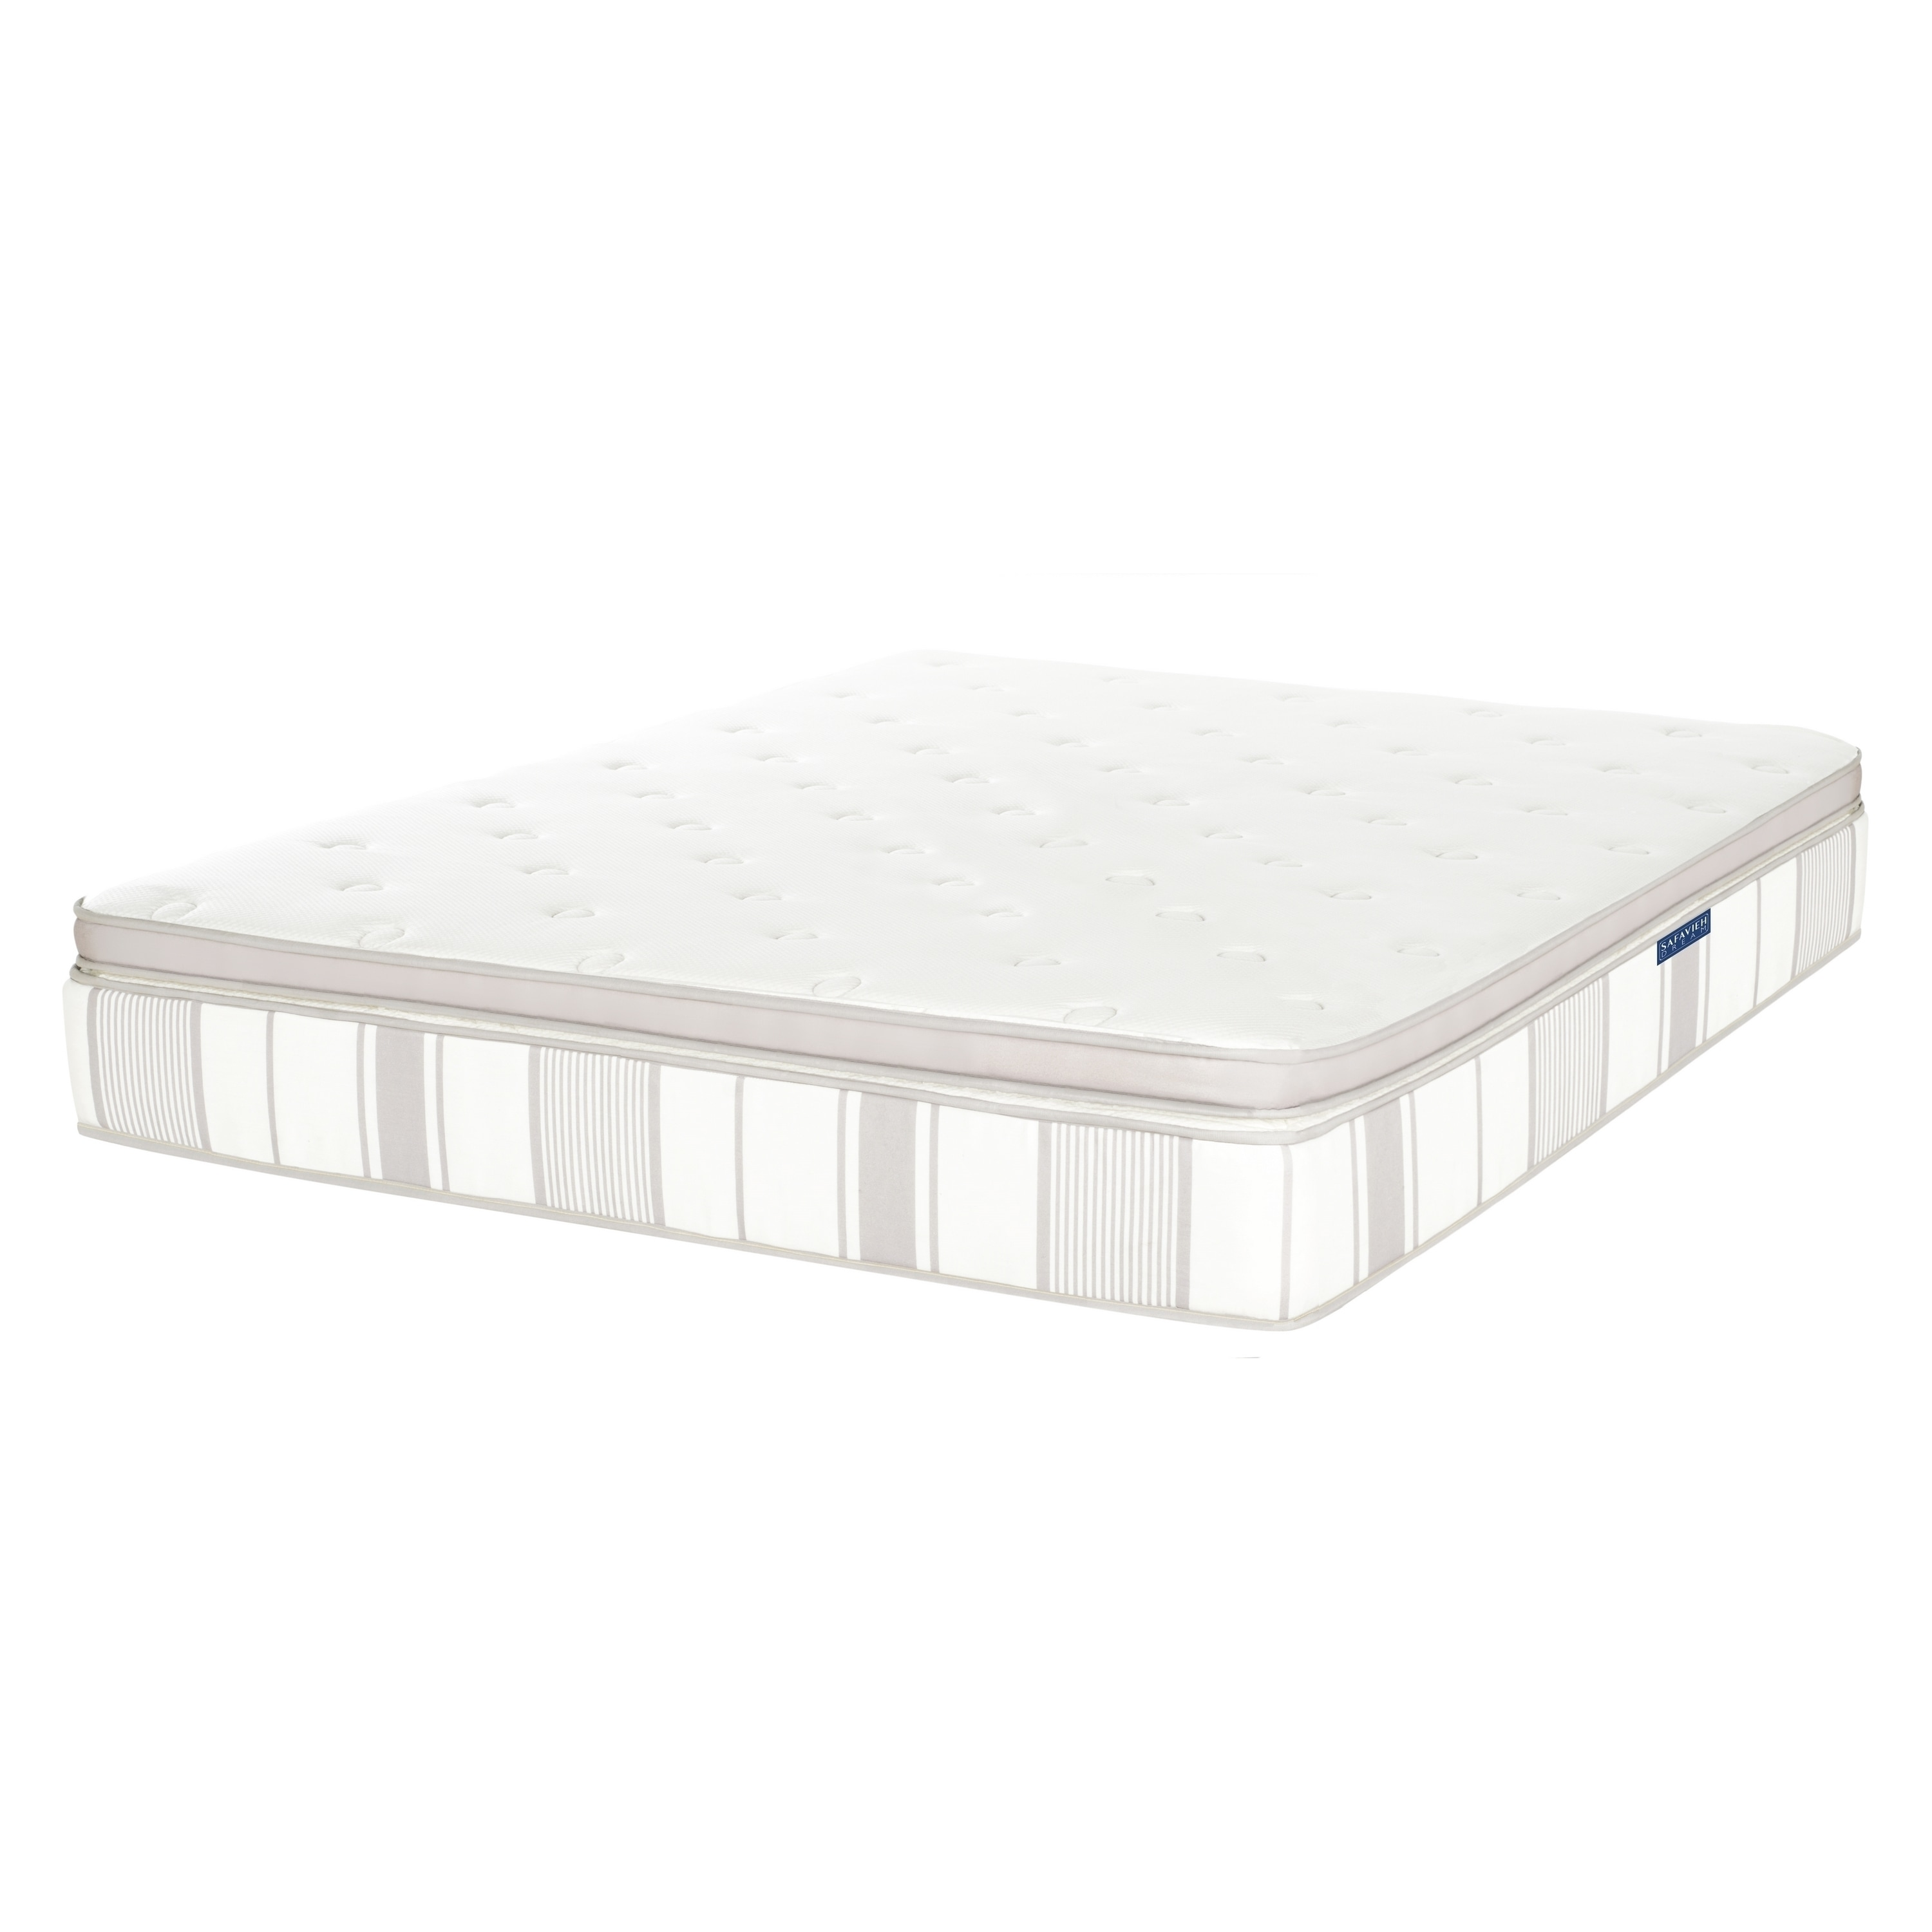 Safavieh Utopia 11 5 inch Pillow top Spring Full size Mattress Bed